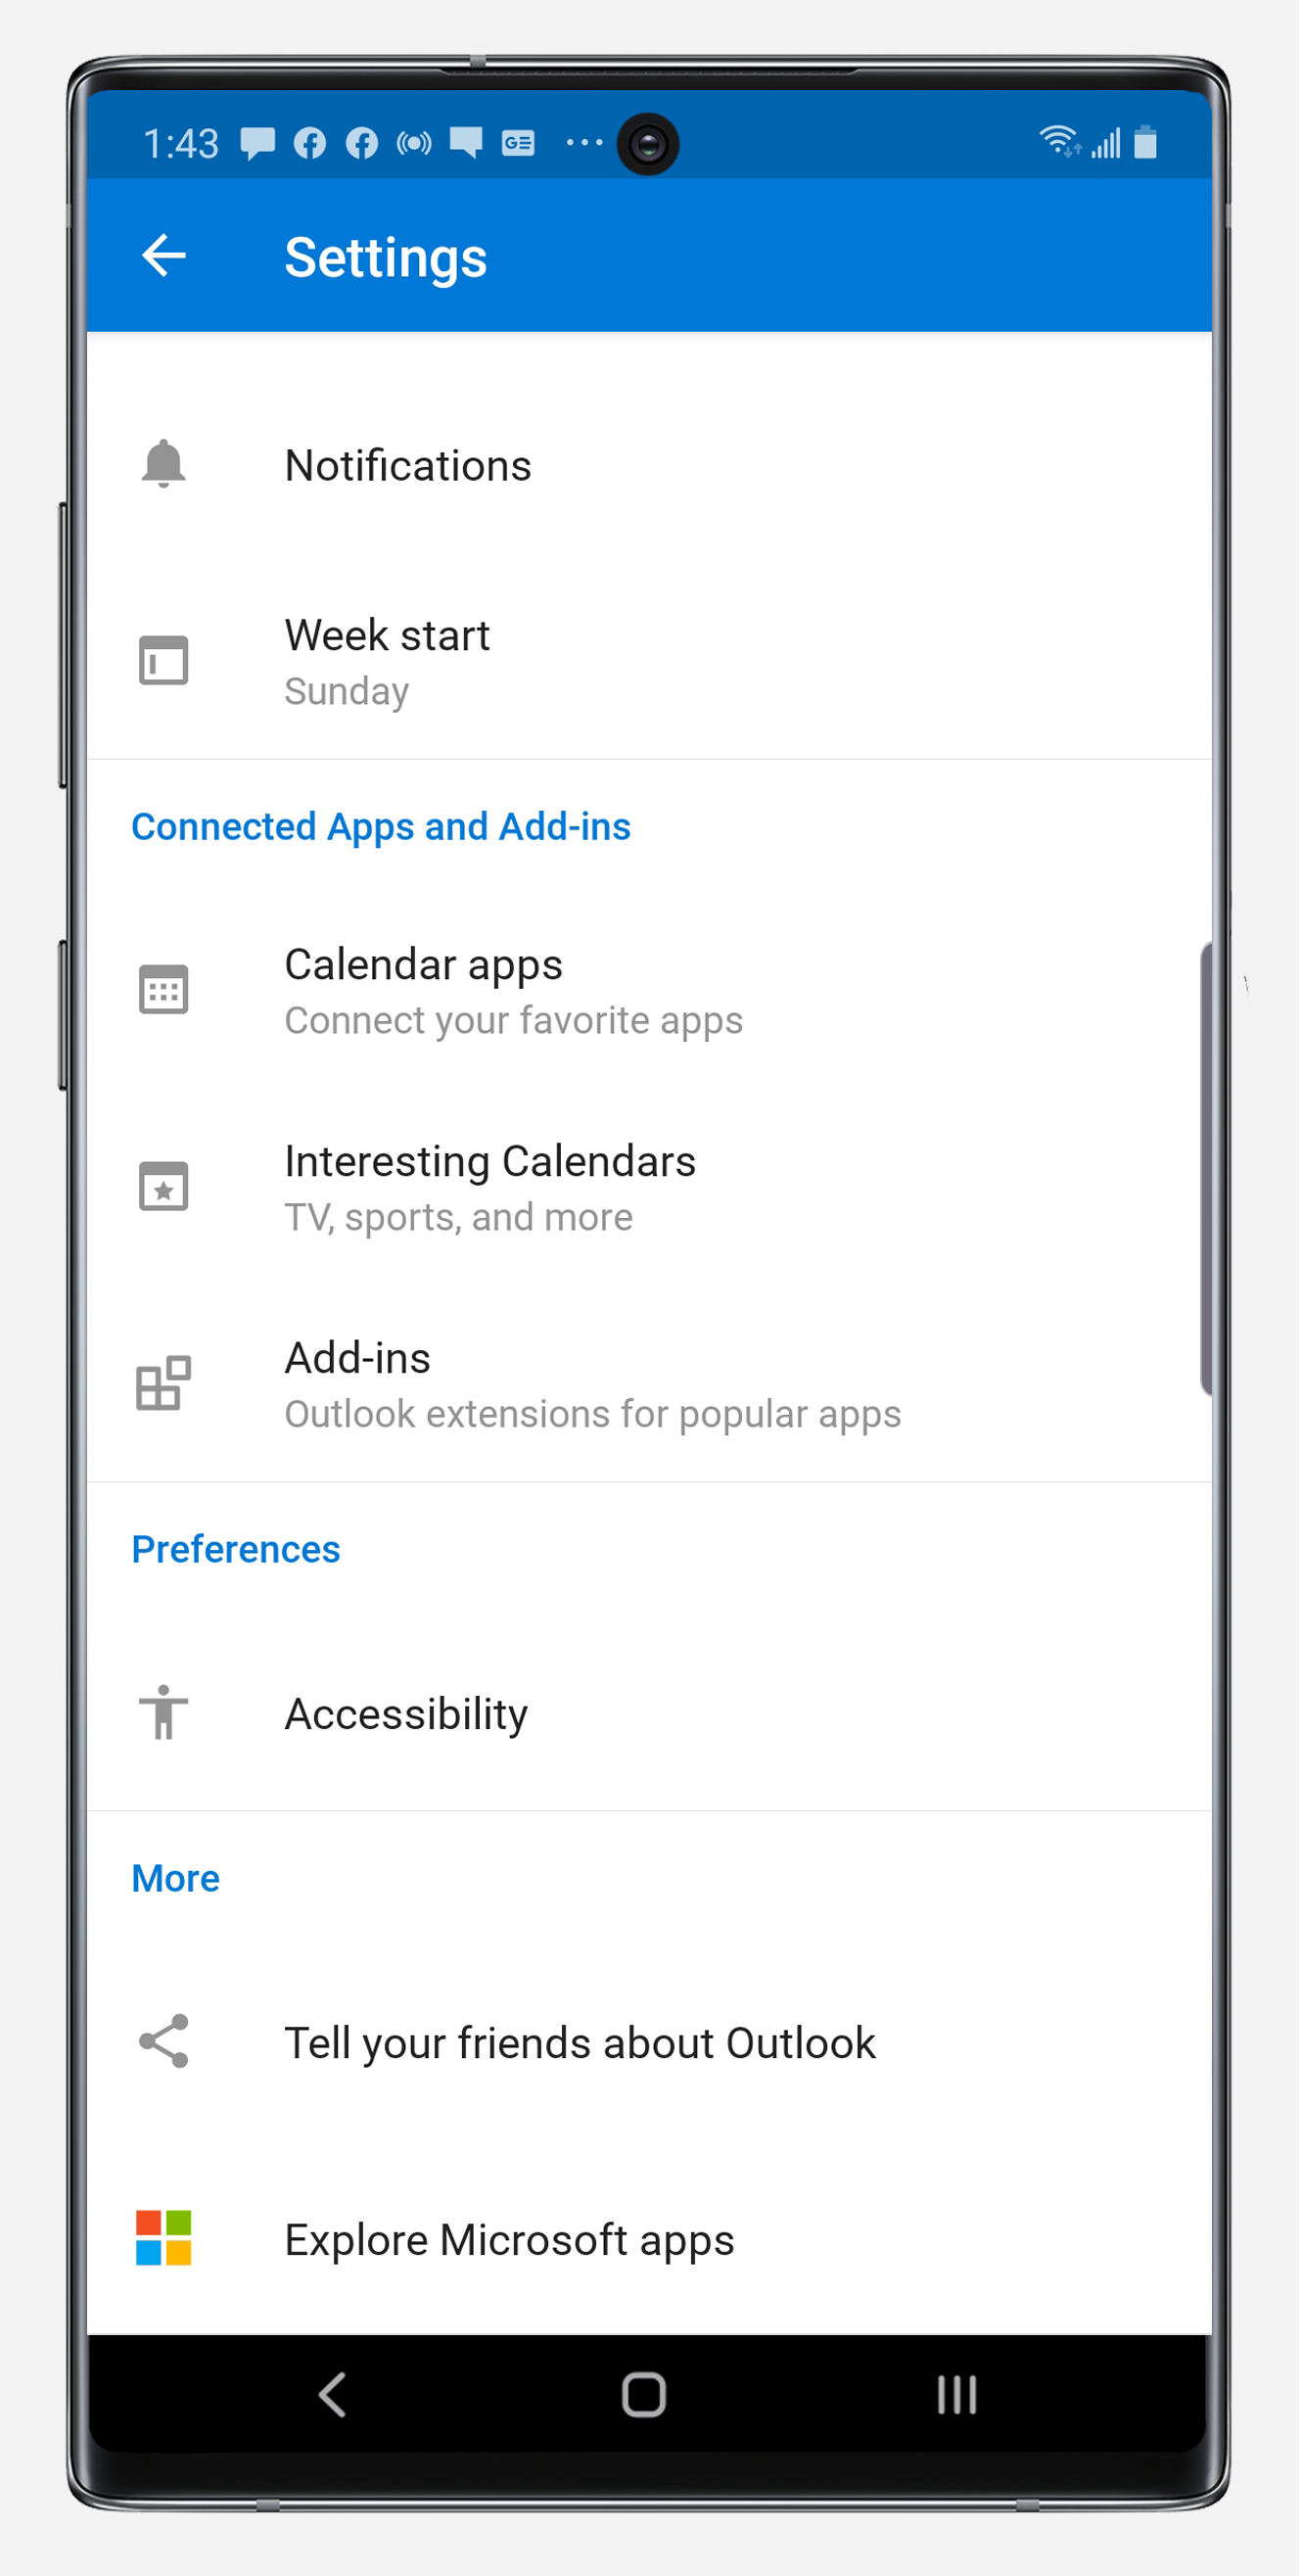 Outlook settings panel on Note10